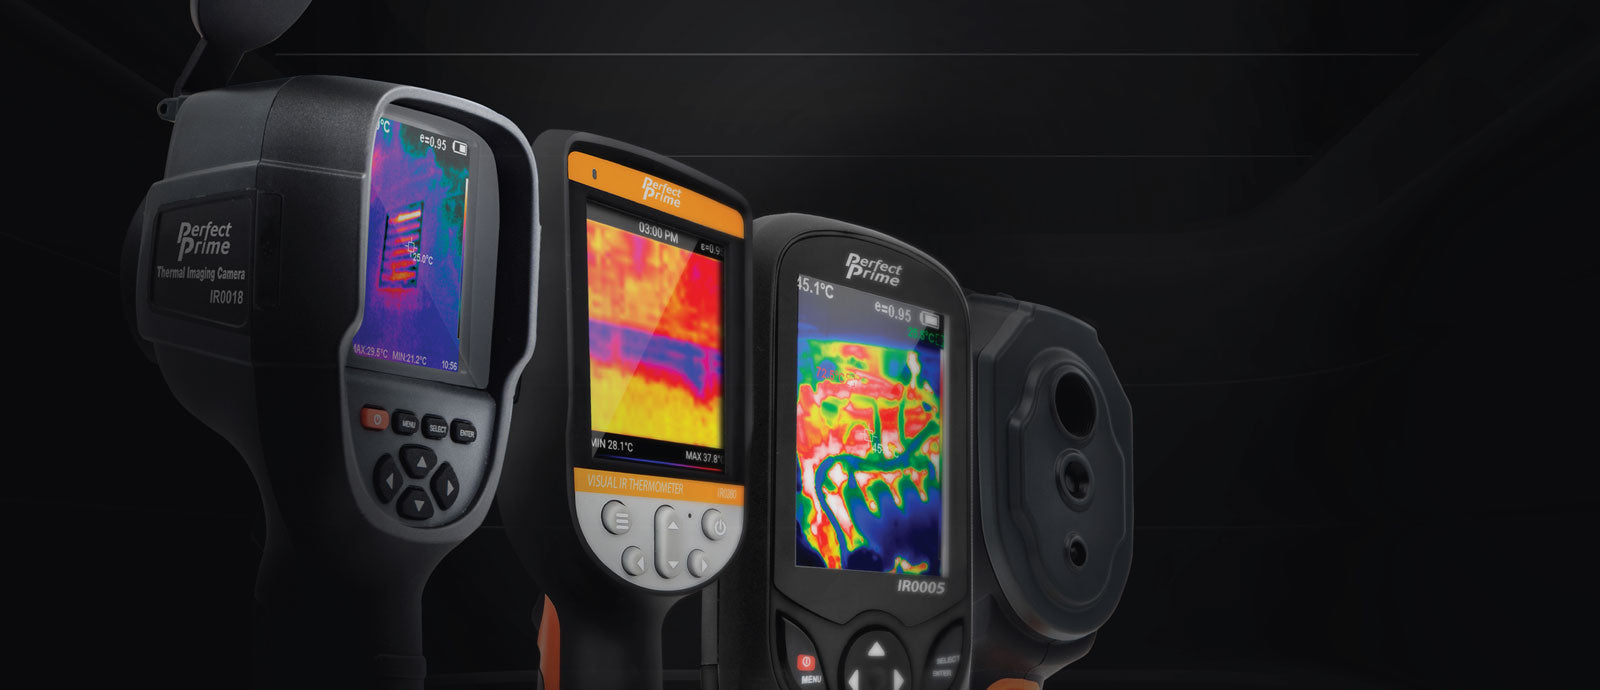 thermal imaging camera IR0018, IR0280, IR0005 and IR0002